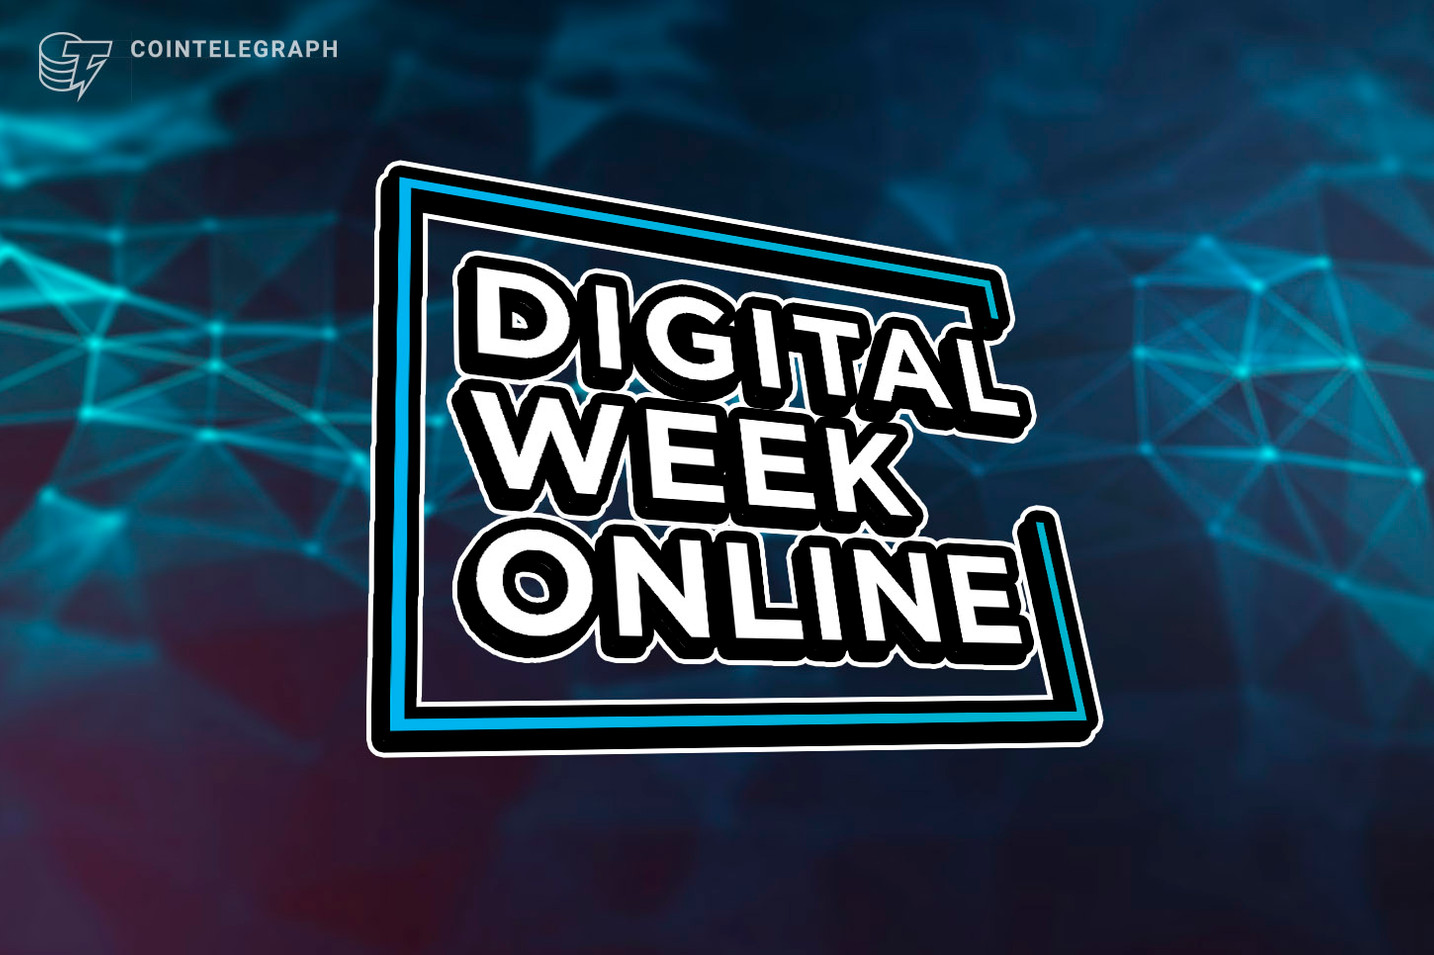 Digital Week Online – The most ambitious event in October 2020